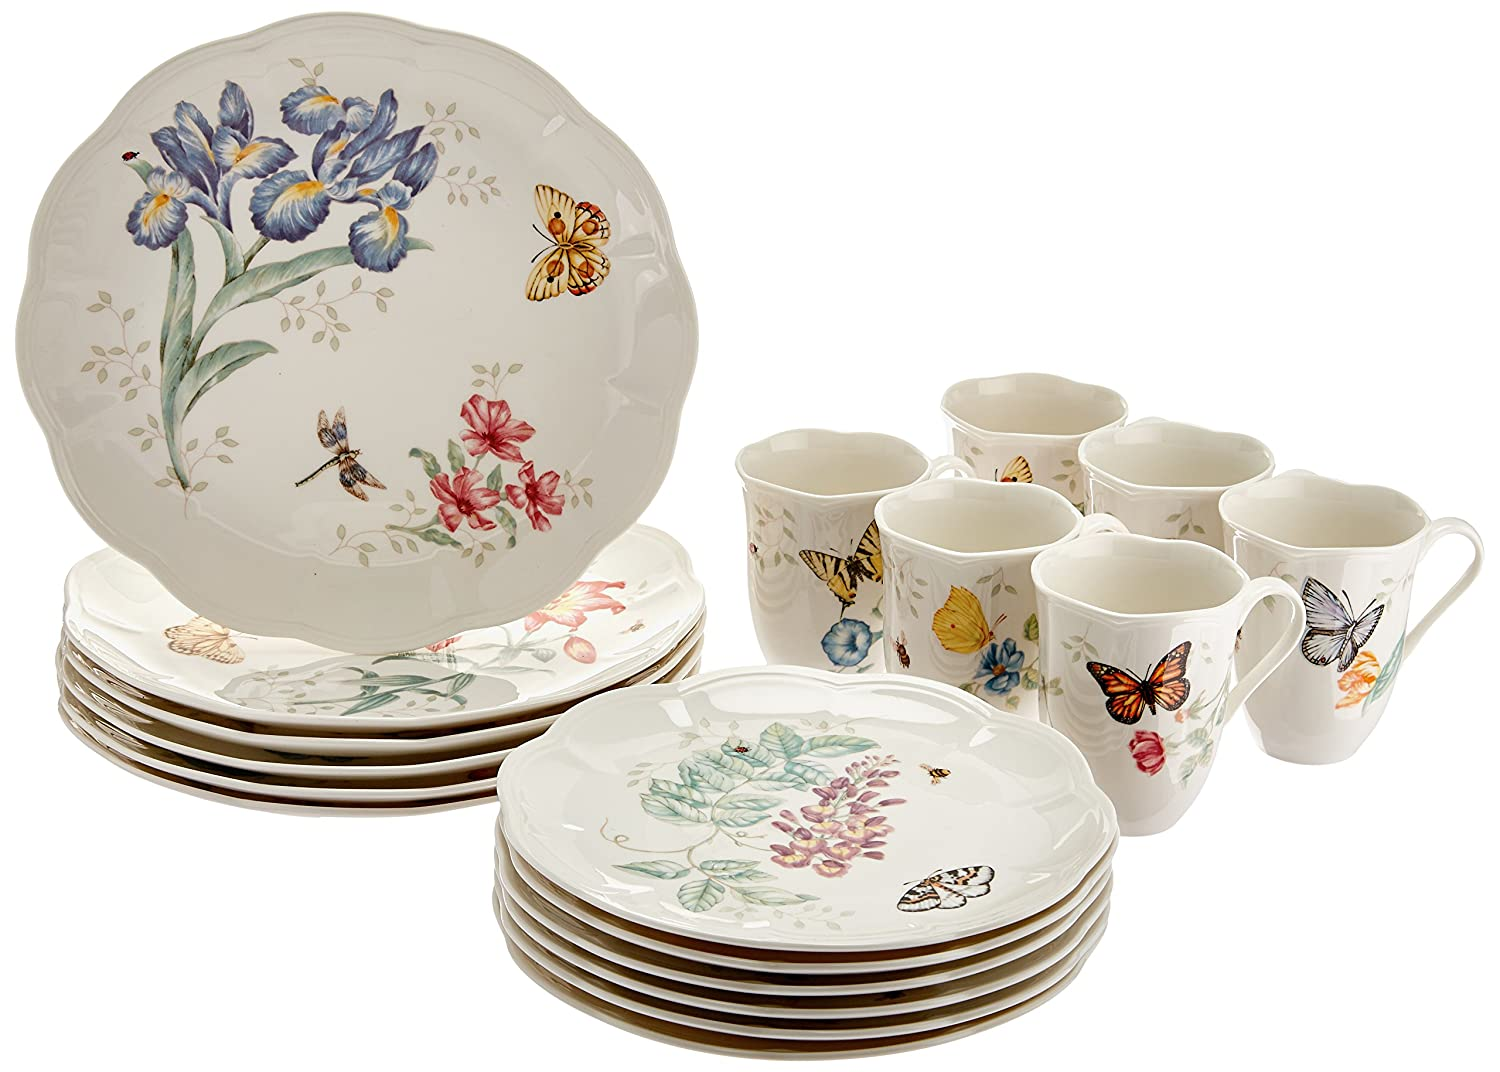 Amazon.com Lenox Butterfly Meadow 18-Piece Dinnerware Set Service for 6 Dinner Set Lenox Kitchen u0026 Dining  sc 1 st  Amazon.com & Amazon.com: Lenox Butterfly Meadow 18-Piece Dinnerware Set Service ...